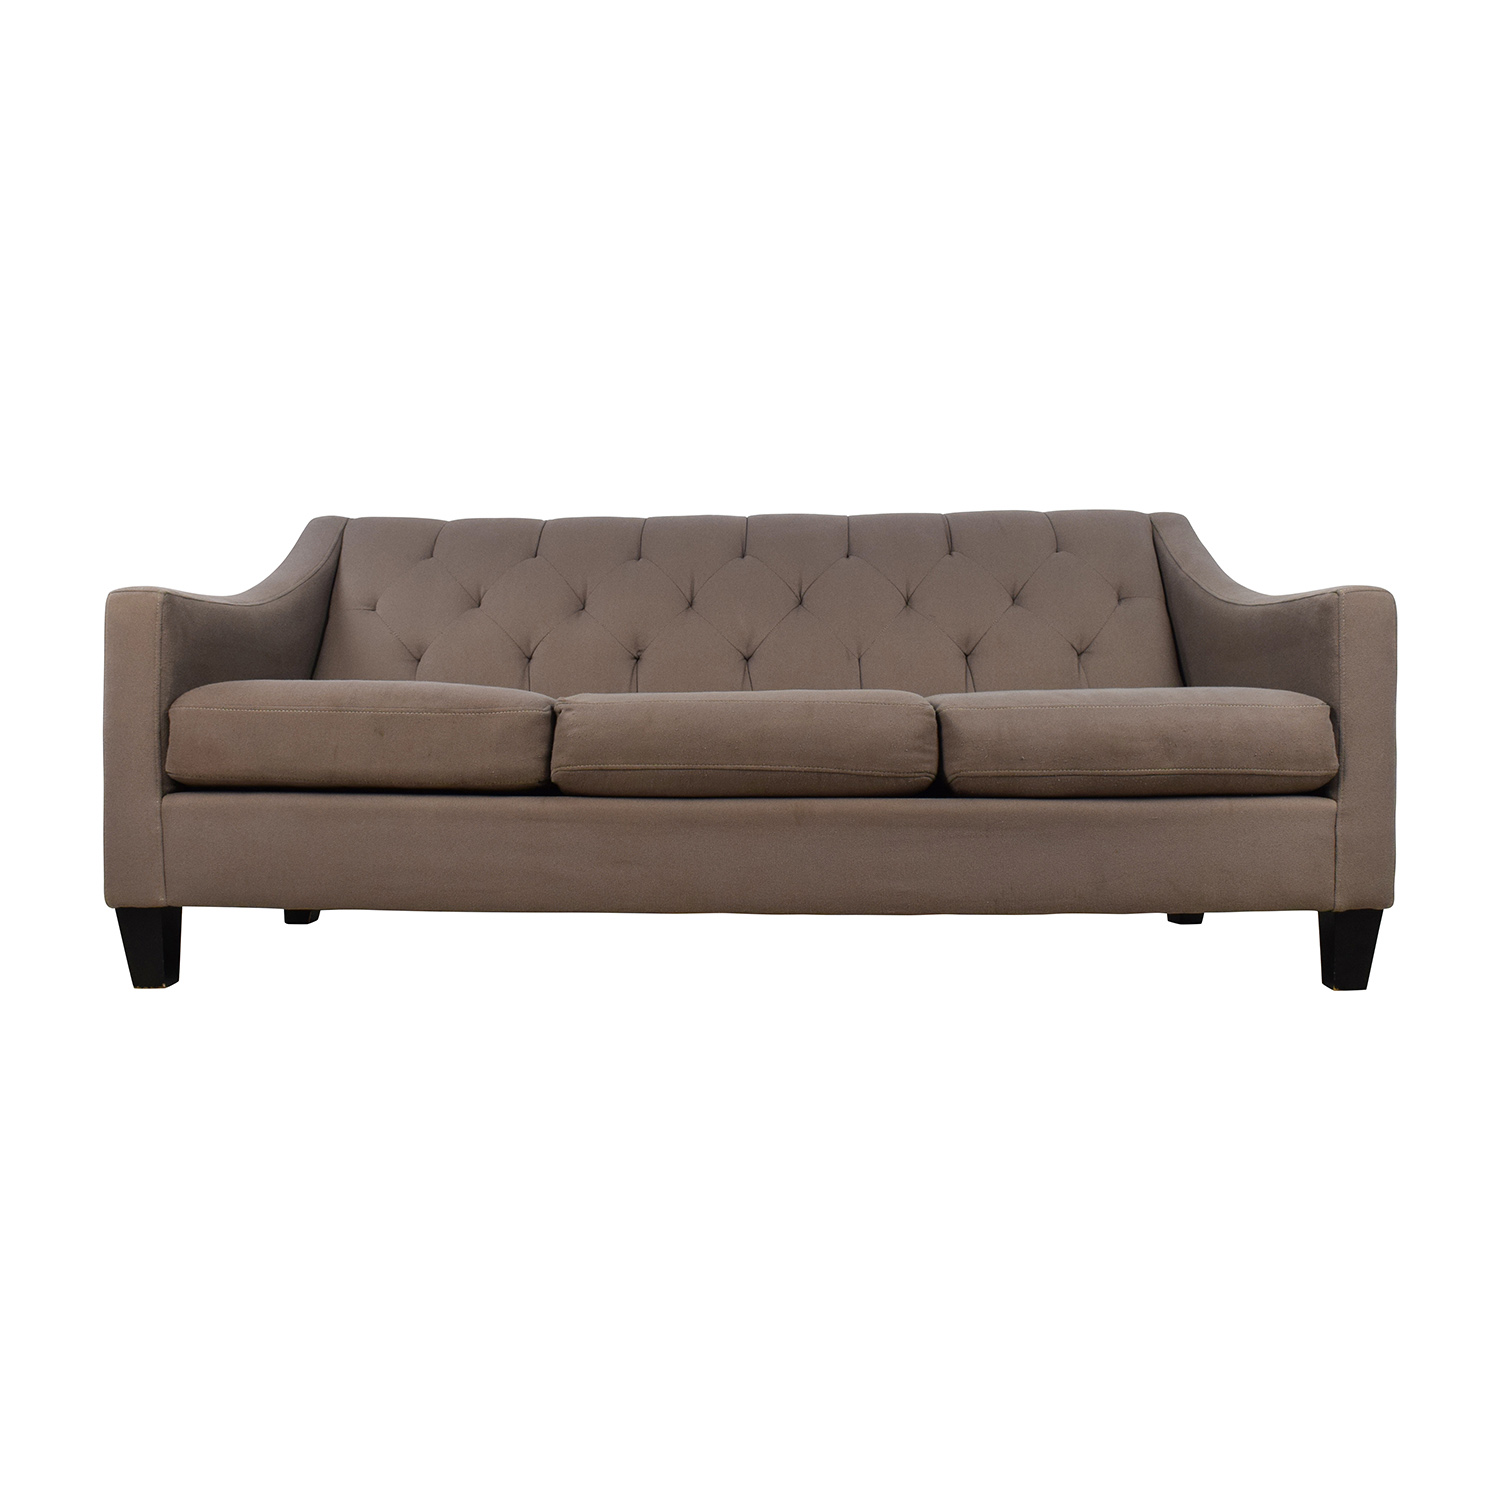 Brand-new 65% OFF - Macy's Macy's Tufted Back Grey Couch / Sofas EQ51